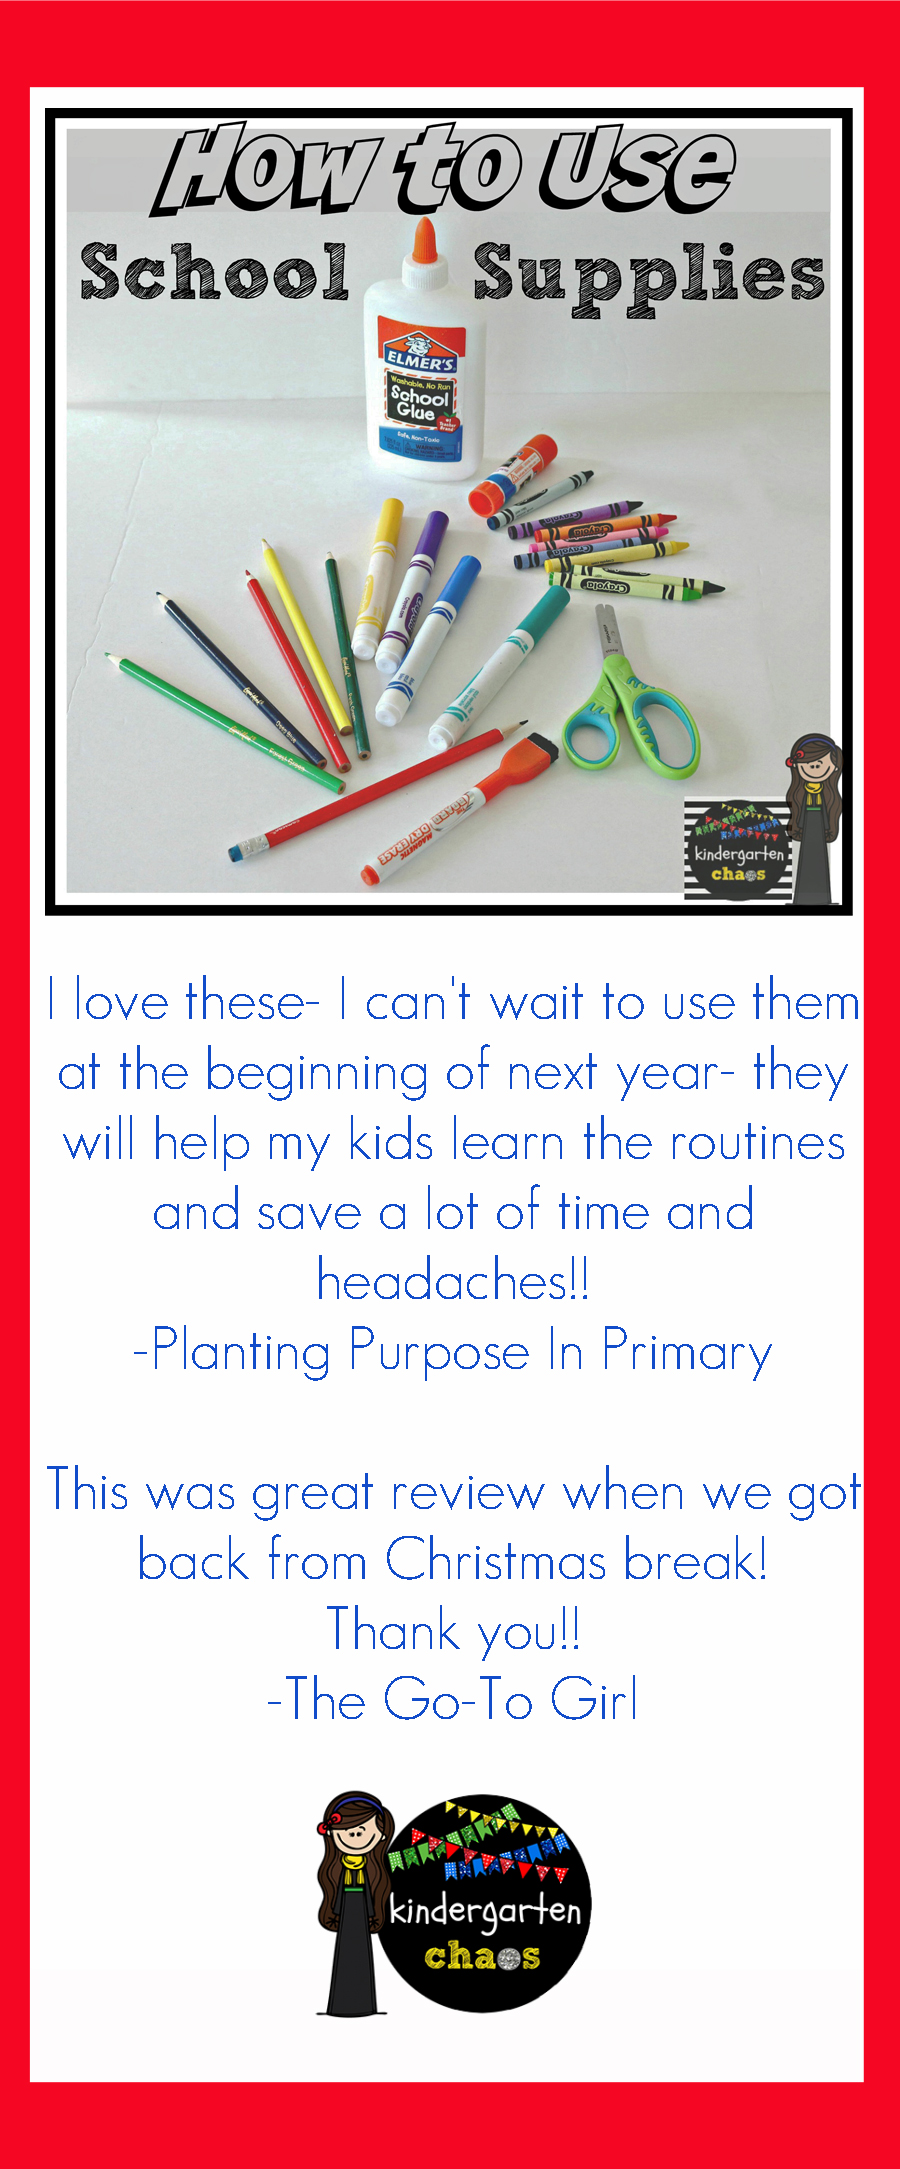 Printable Pack: How To Use School Supplies. A printable for each school supply to help kids learn how to use them properly including scissors, glue, dry erase marker, crayon, etc.